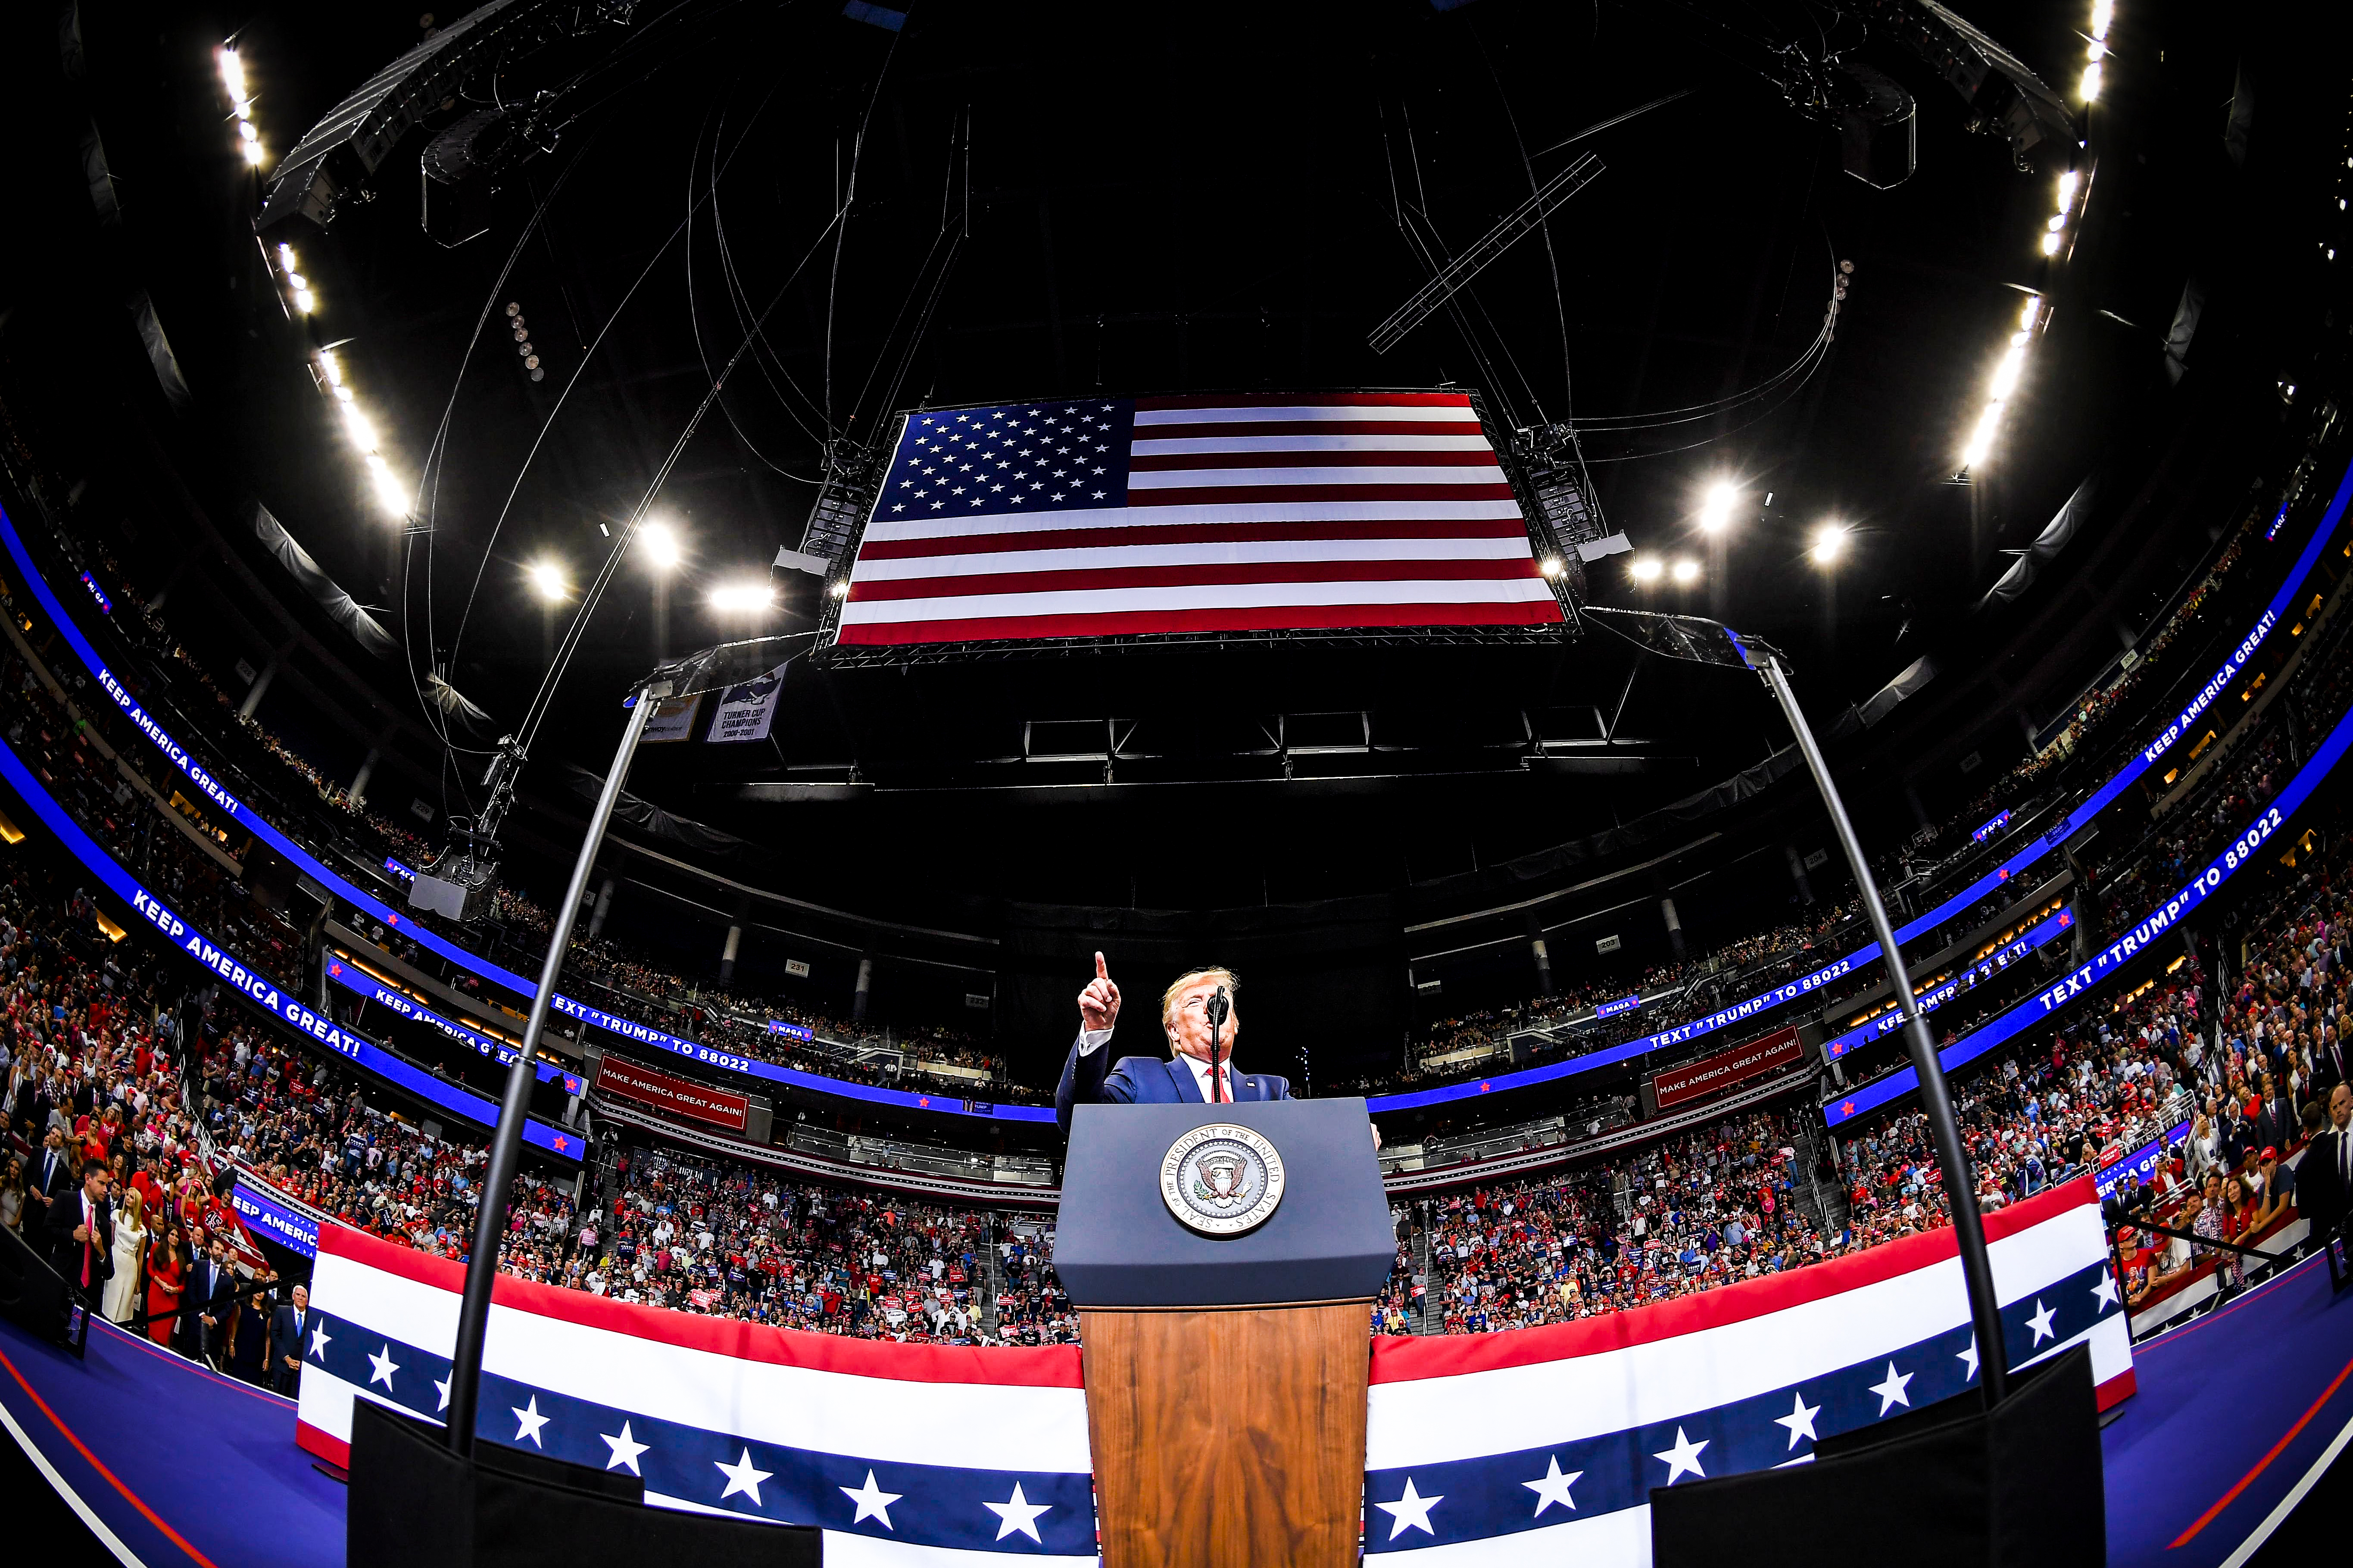 President Trump officially launches his 2020 campaign at the Amway Center in Orlando, Florida on June 18, 2019.